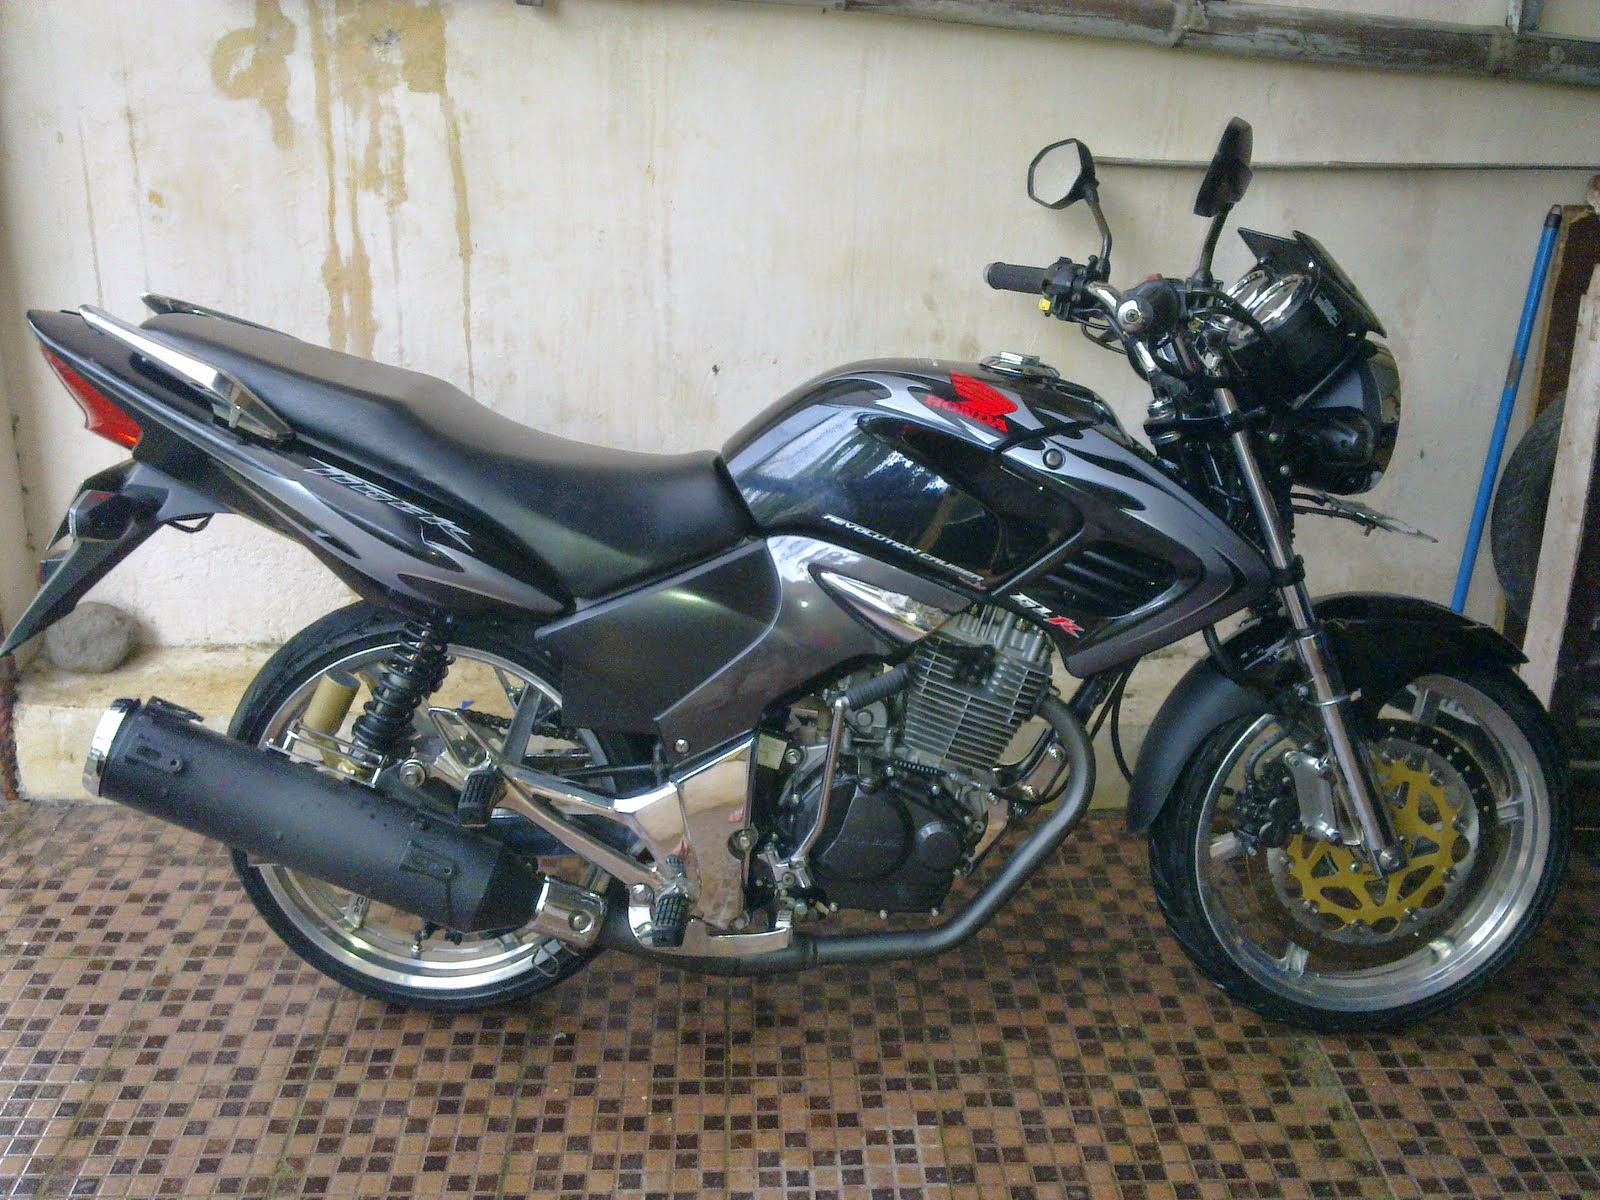 Revo Fit fi Modif Modif Motor Honda Absolut Revo